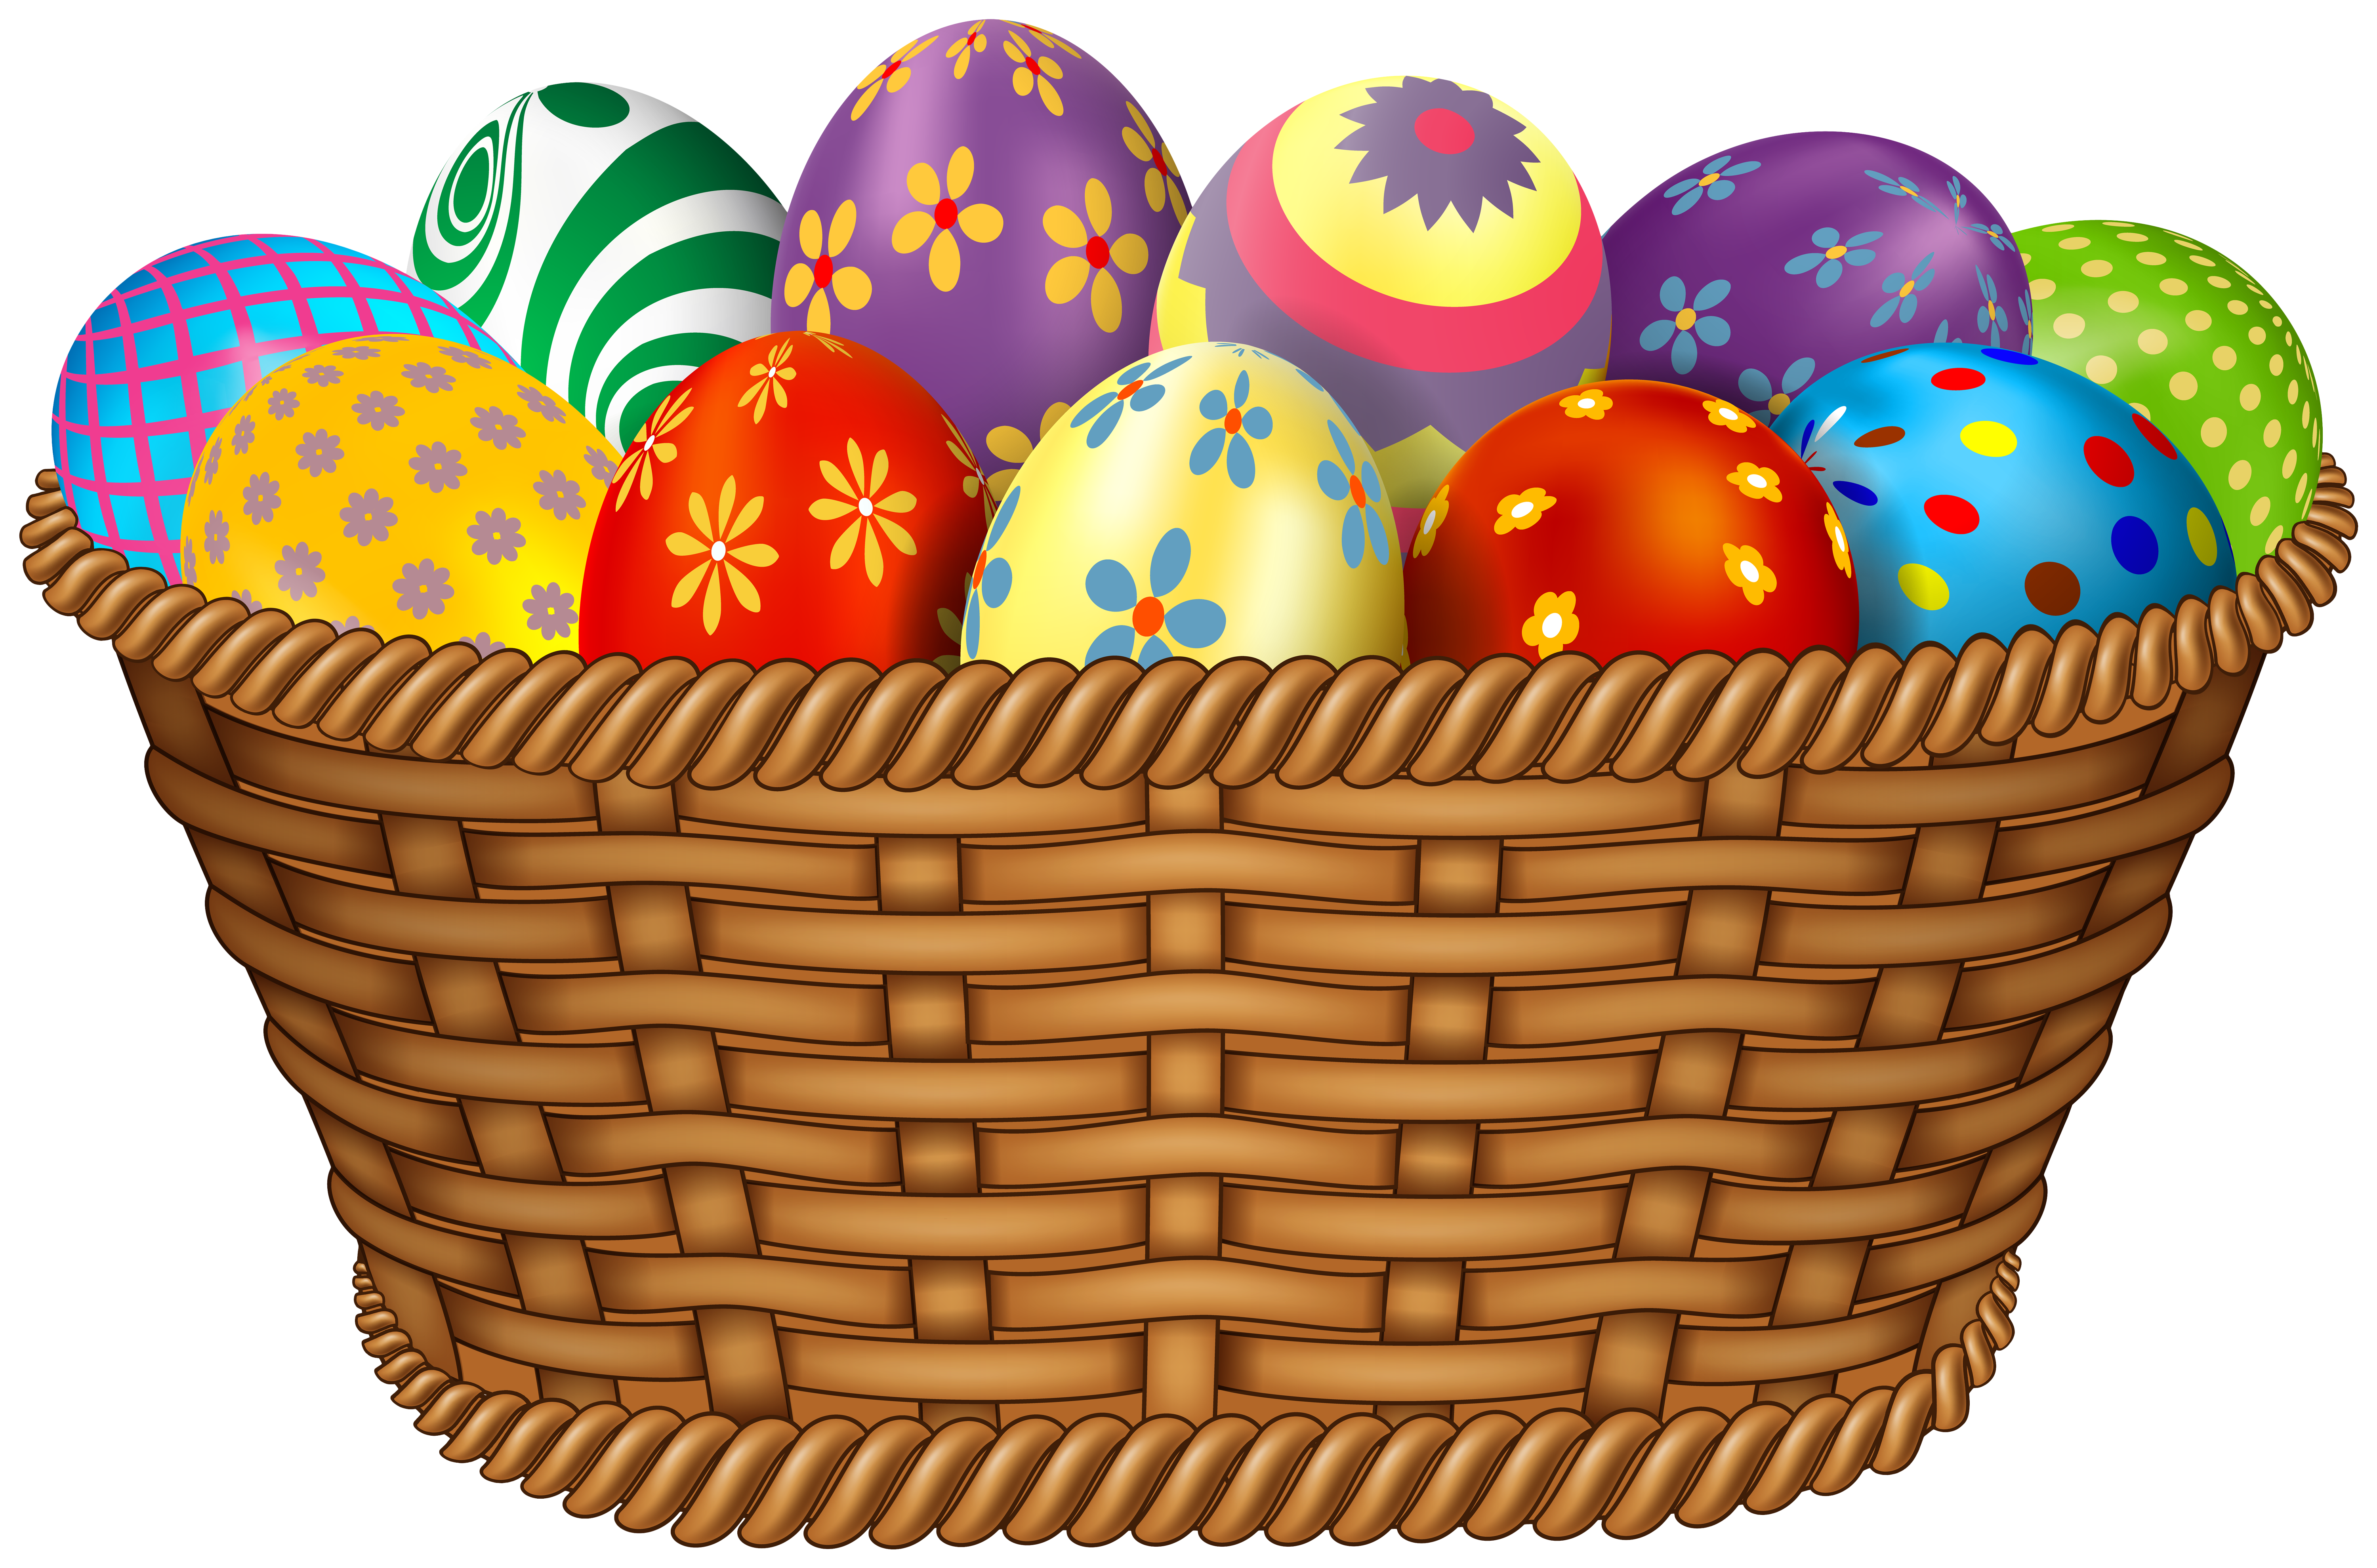 Easter Eggs in Basket Clipart Image.